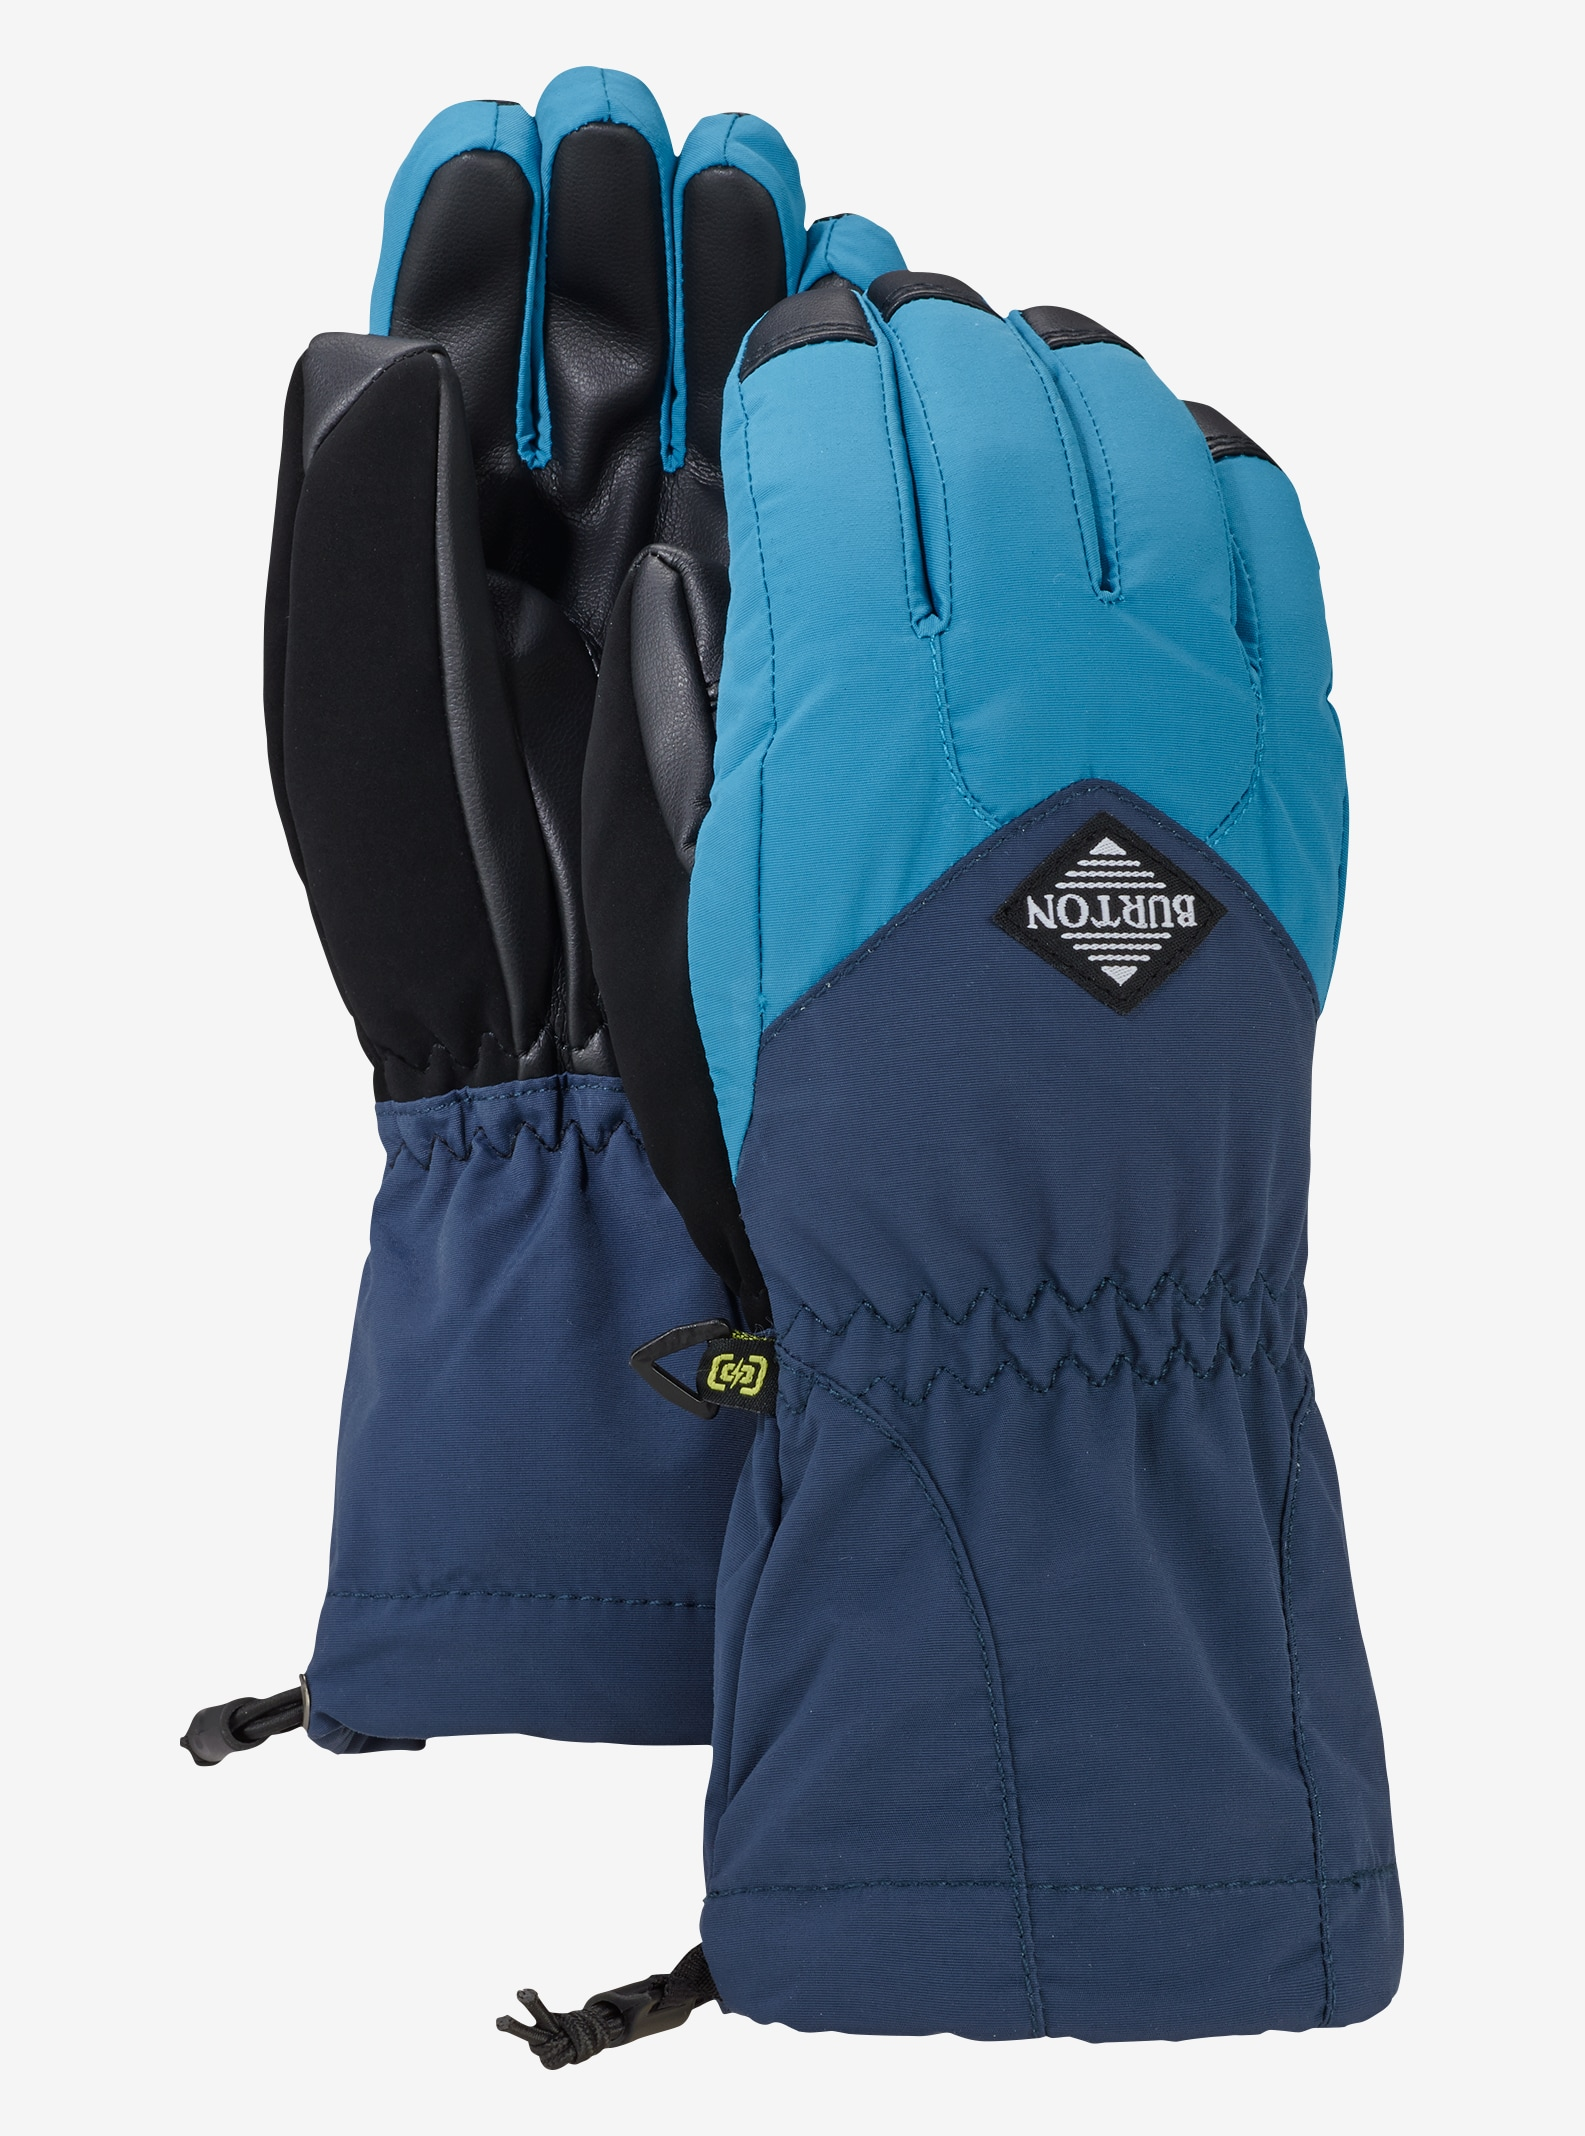 Kids' Burton Profile Glove shown in Mountaineer / Mood Indigo